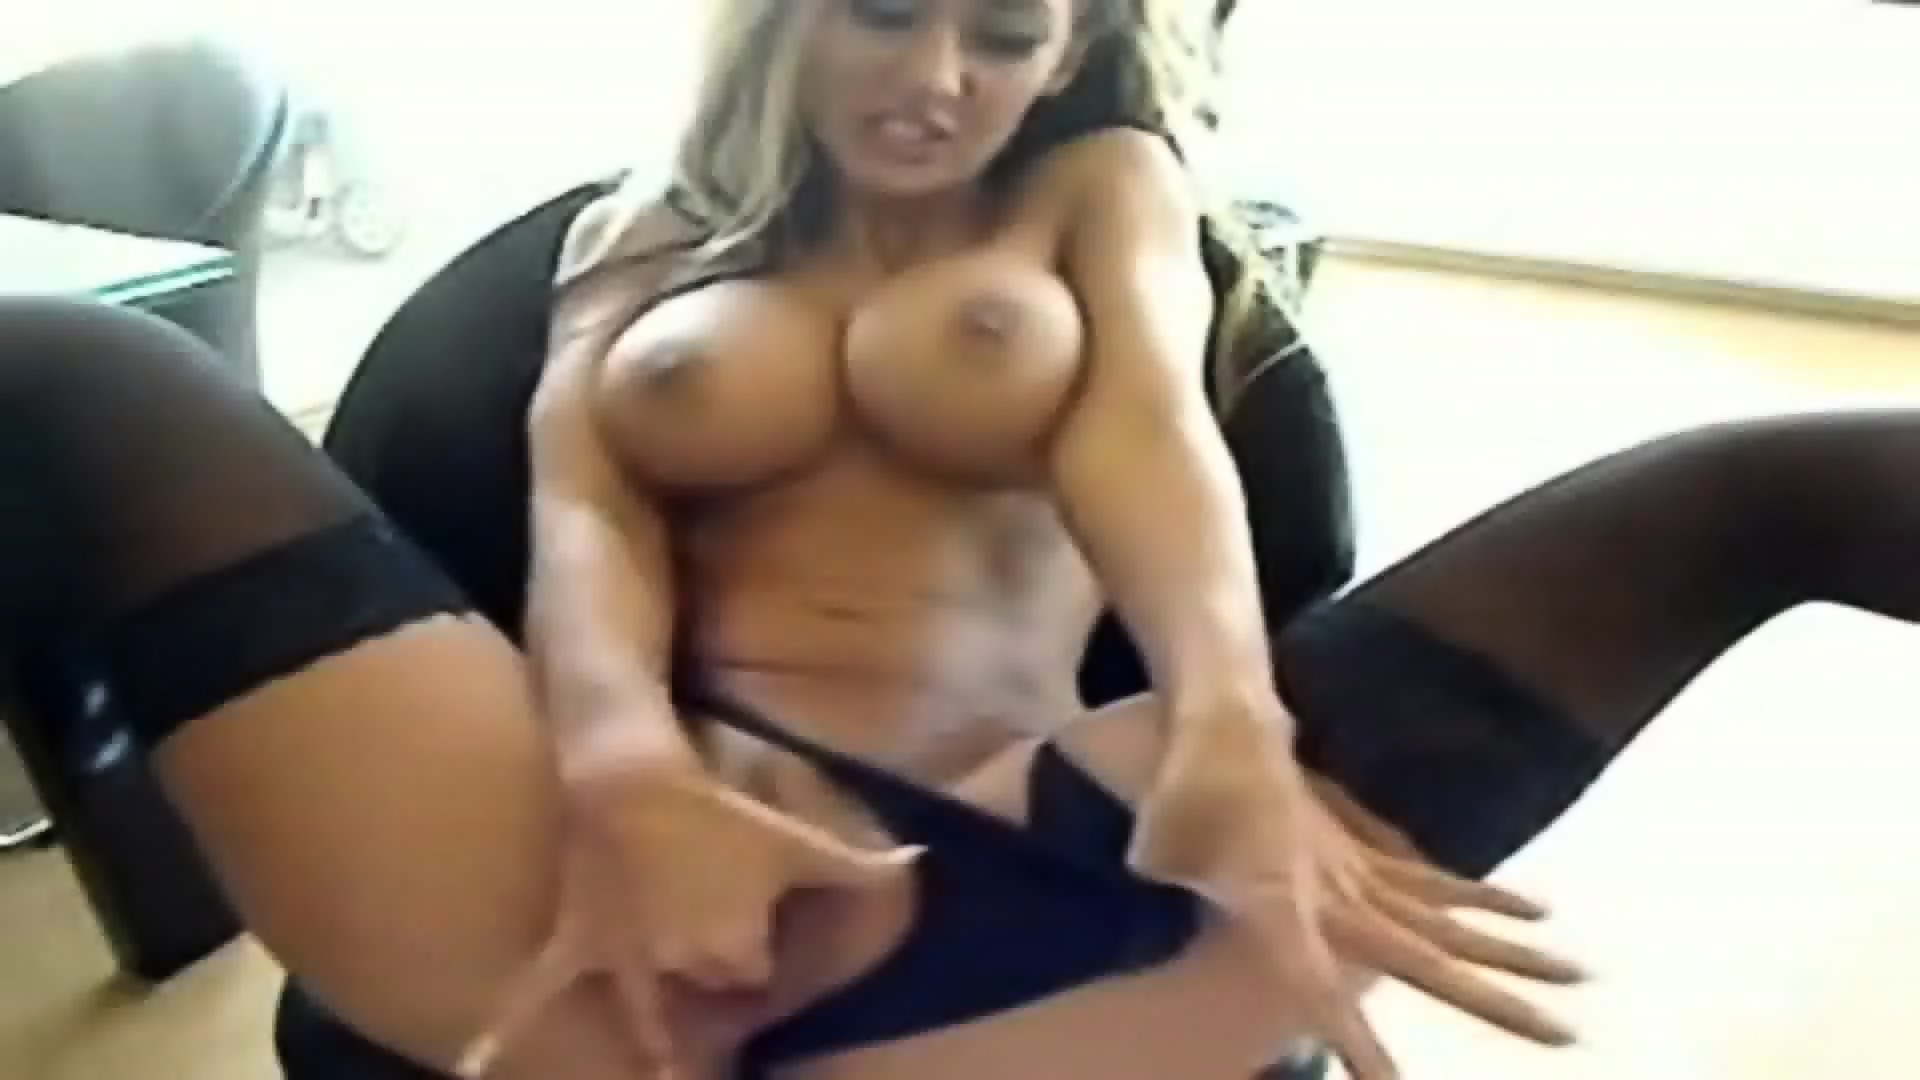 Anal anal brutal dildo fisting in